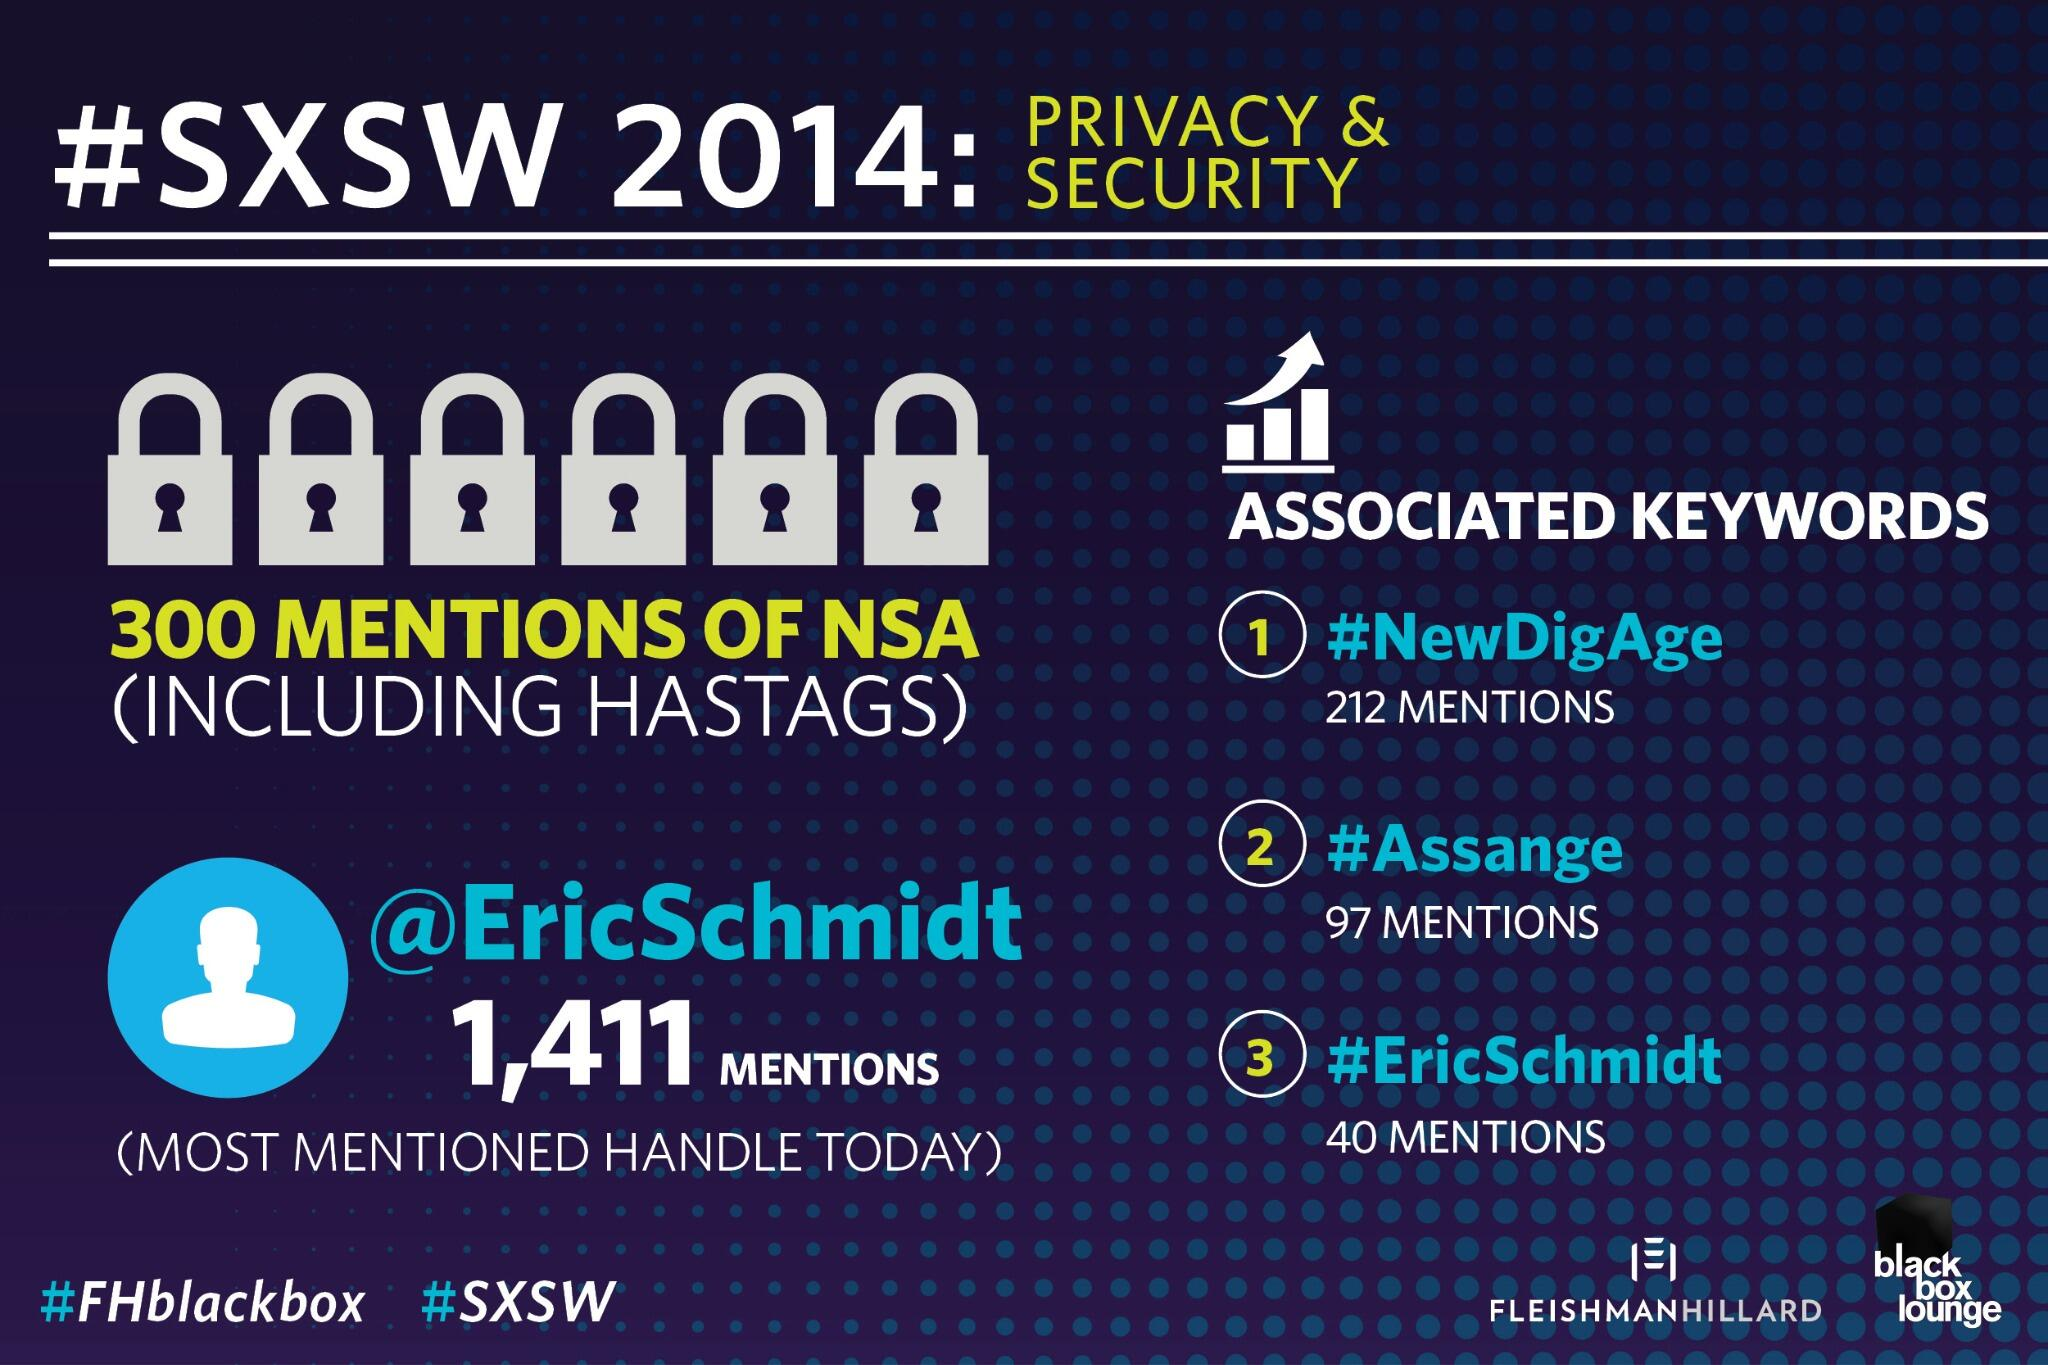 Day one's top privacy & security trends at #SXSW: @EricSchmidt, #Assange & NSA. http://t.co/5t22tXFjl6 #FHblackbox http://t.co/d2bYMAlNx0